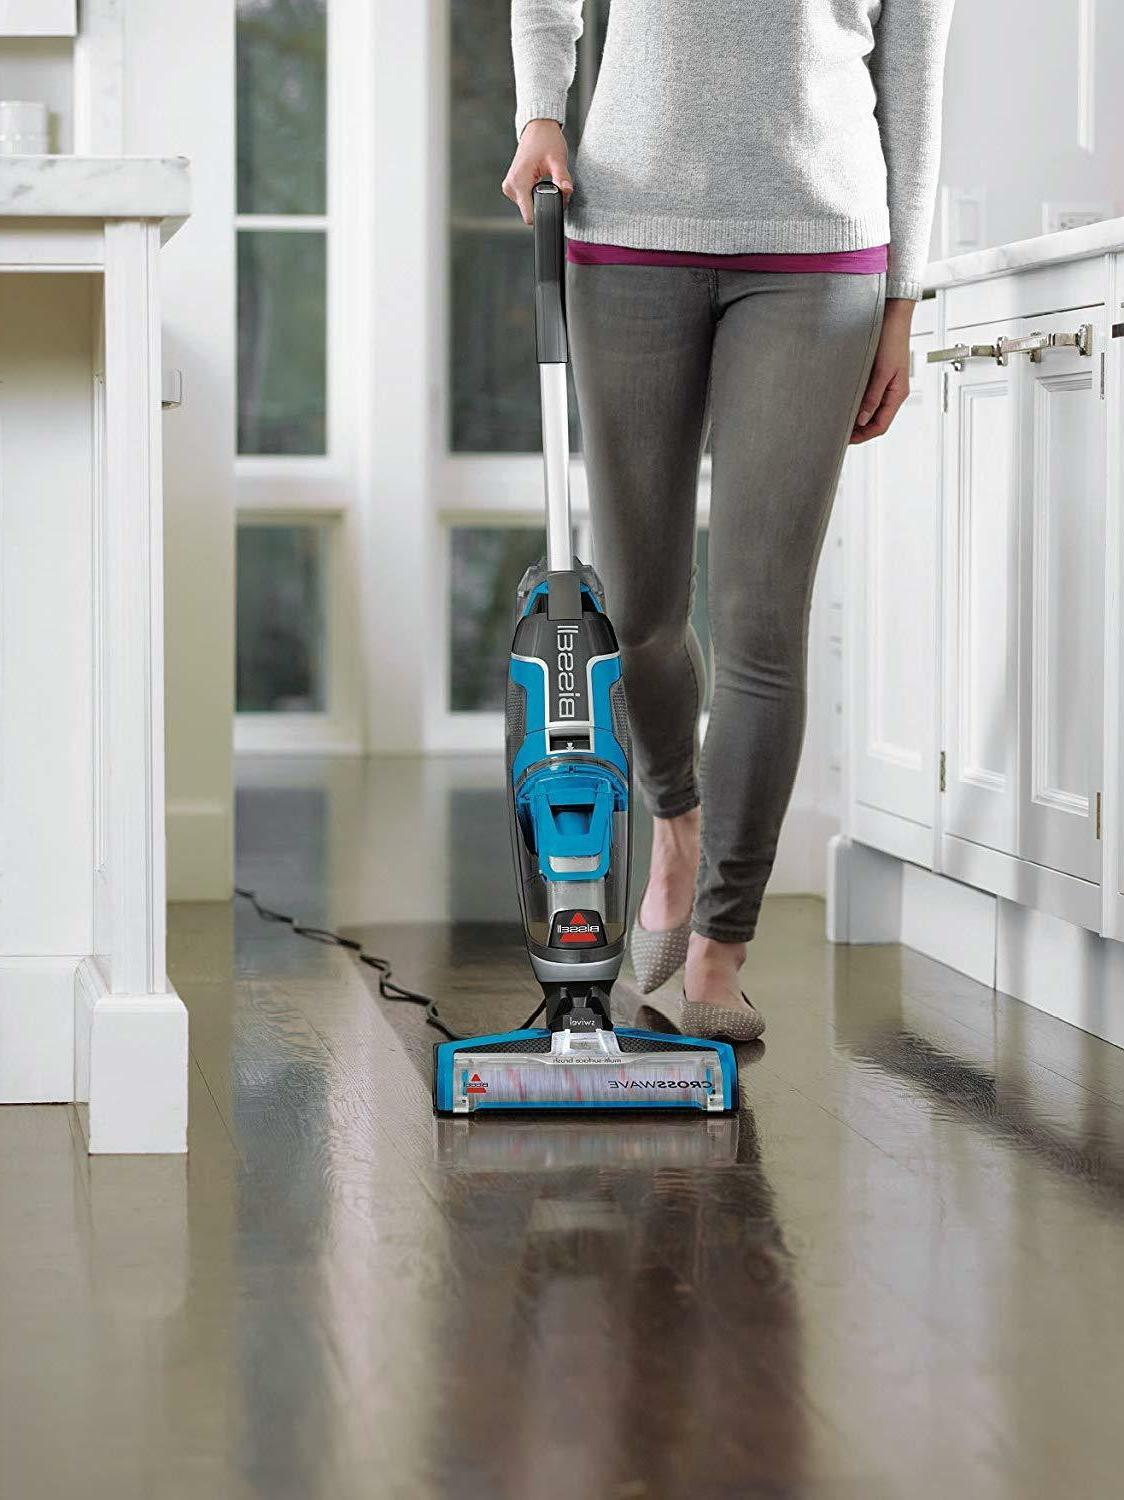 Bissell Cleaner Hidrolimpiador 3 1 Able Wash and